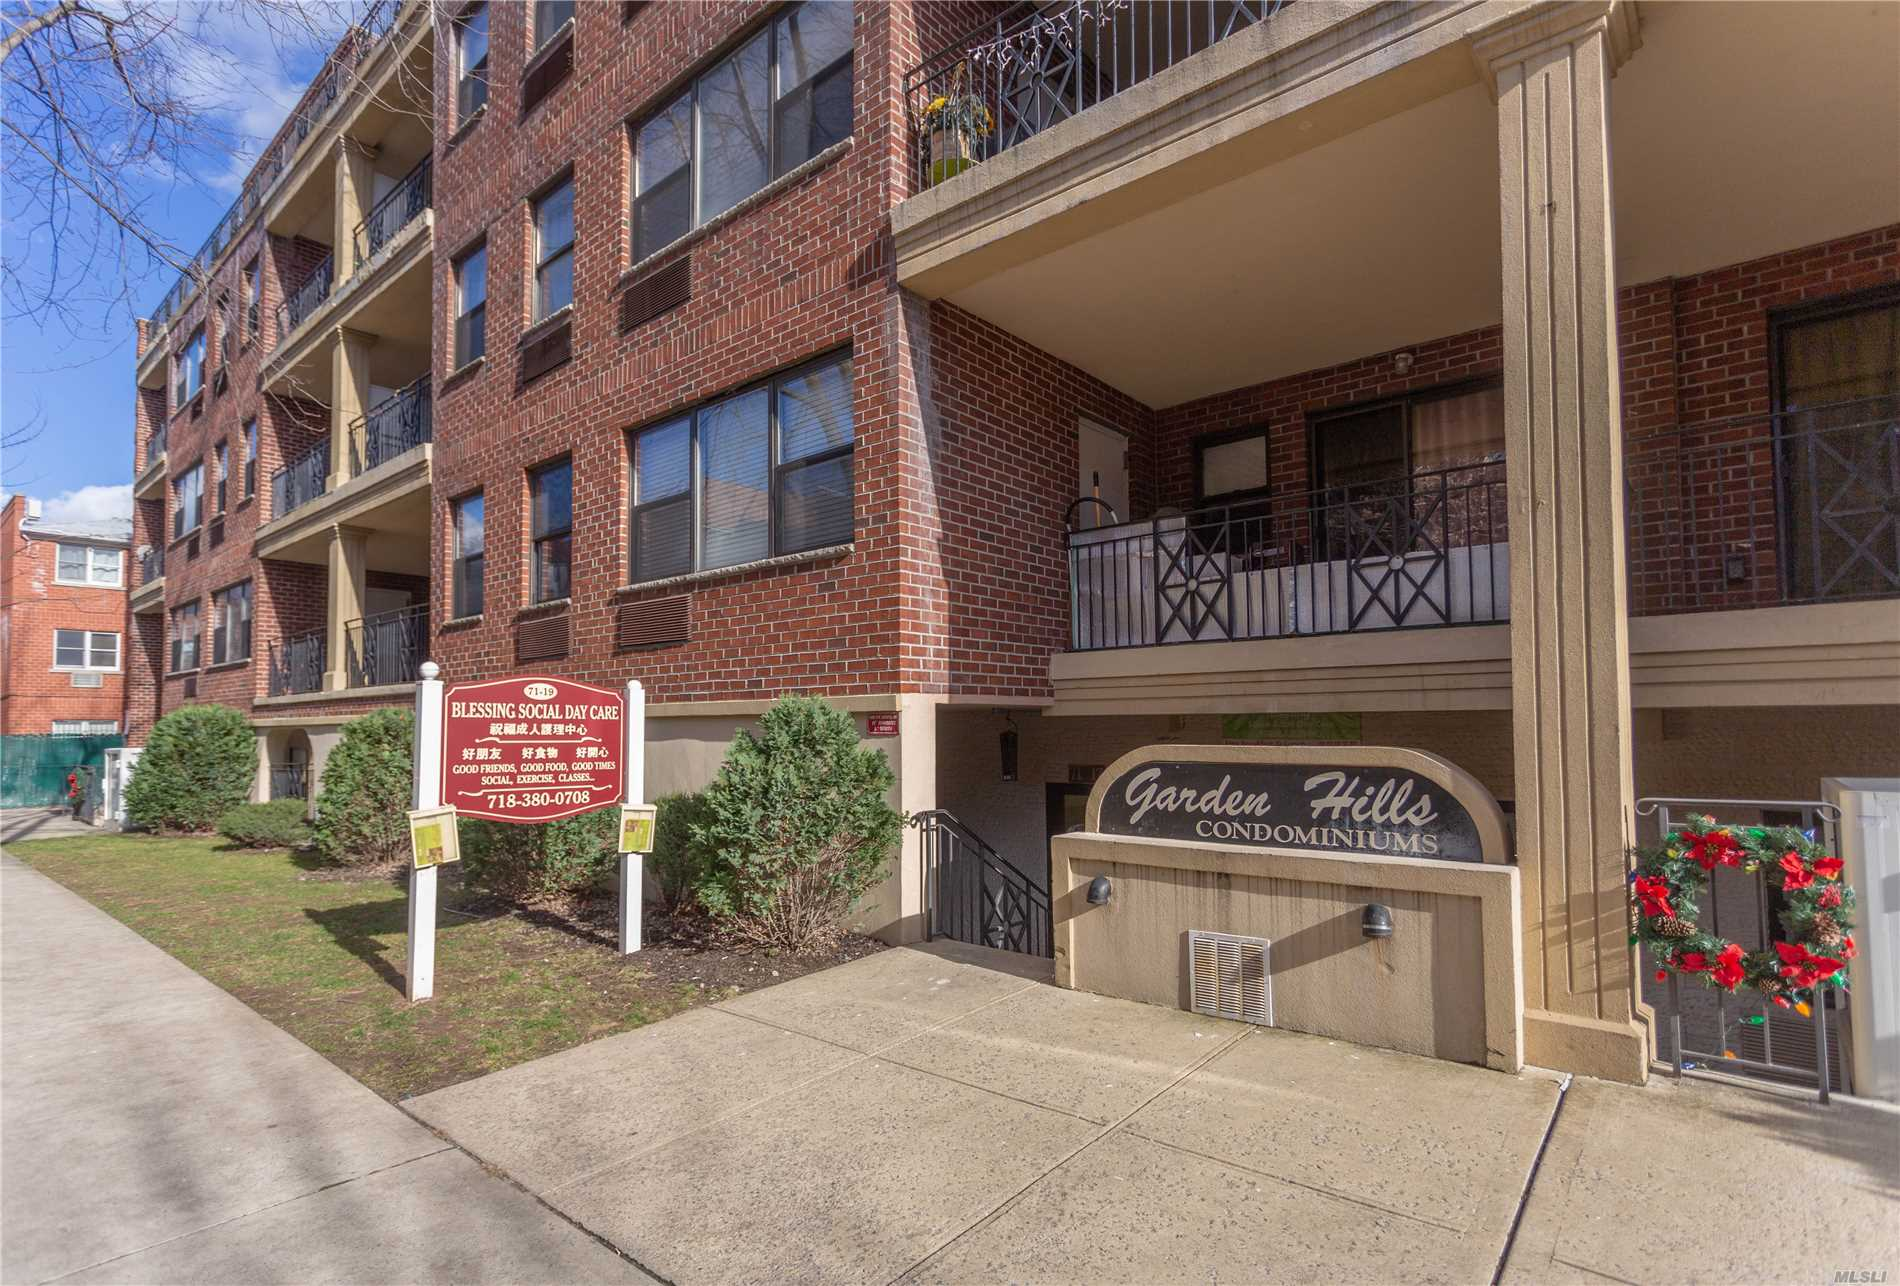 This Beautiful 2 Bedrooms, 2 Updated Full Bathrooms With Grohe Faucet,  Living, Dining Rooms, Formal Kitchen With Granite Counter Tops, Stainless Steel Appliances, Hardwood Floors, Washer & Dryer In Unit, Large Balcony, Convenient To Shopping & Transportation Bus Q65, Q25, Q34 25Mins To Main St. Must See This Will Not Last.